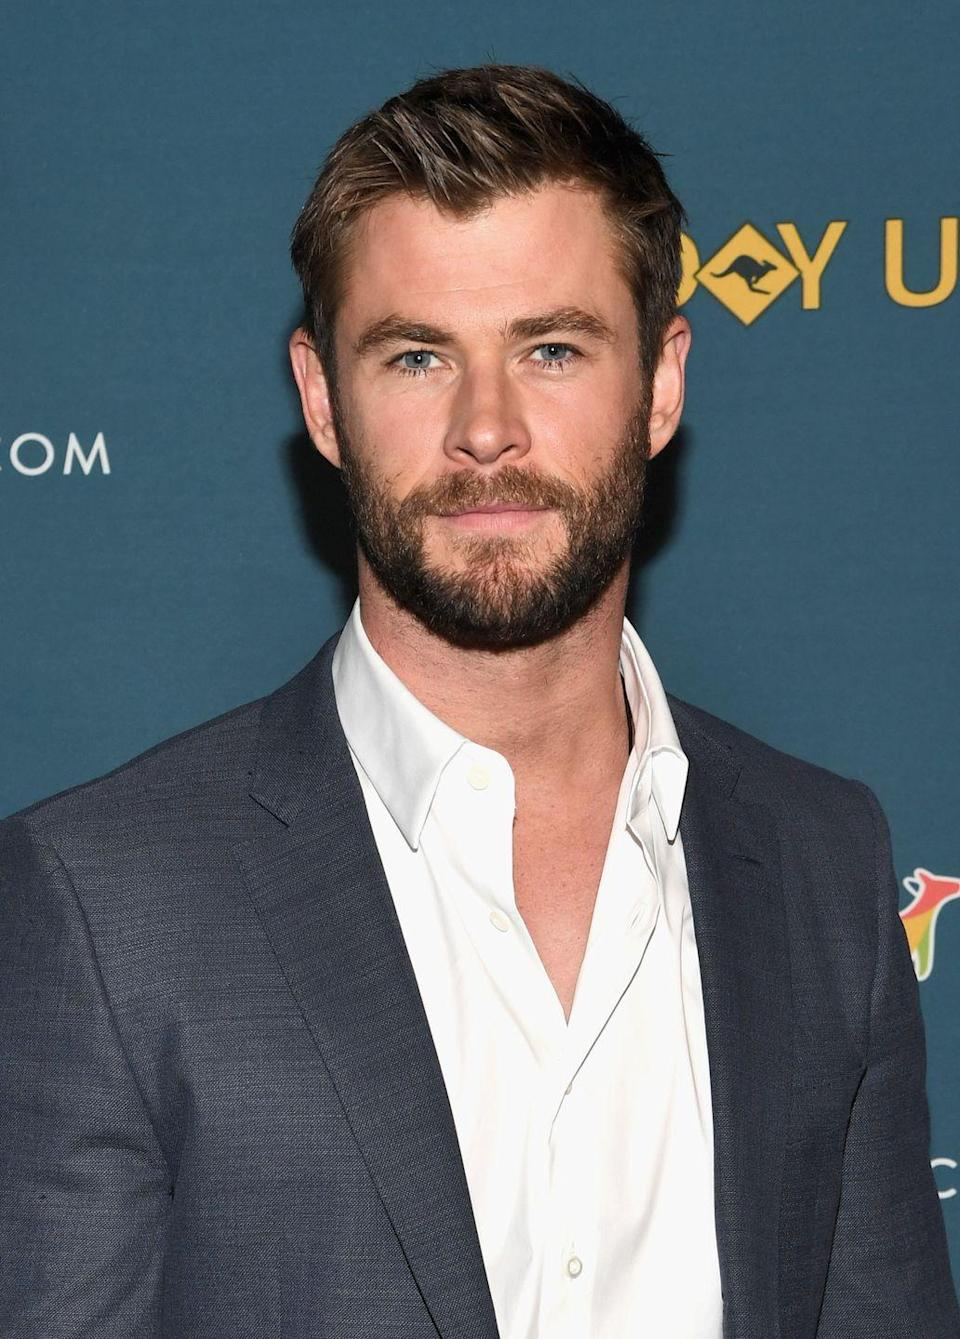 <p><del>Thor</del> Hemsworth has made a perfectly groomed beard part of his signature look, for good reason.</p>